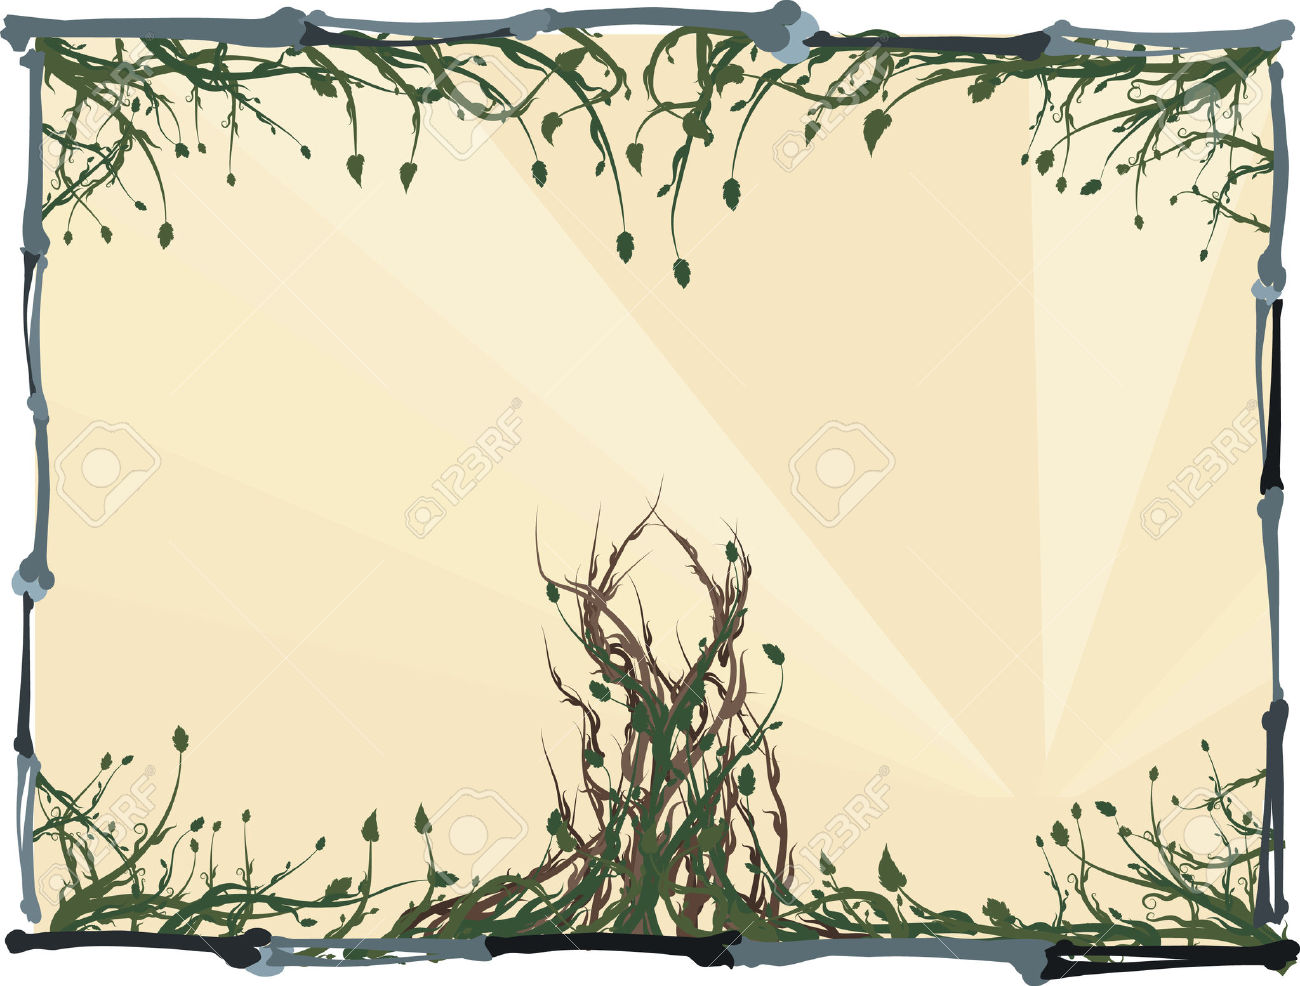 Overgrown Wild Roots And Leaves With A Bone Frame. Royalty Free.